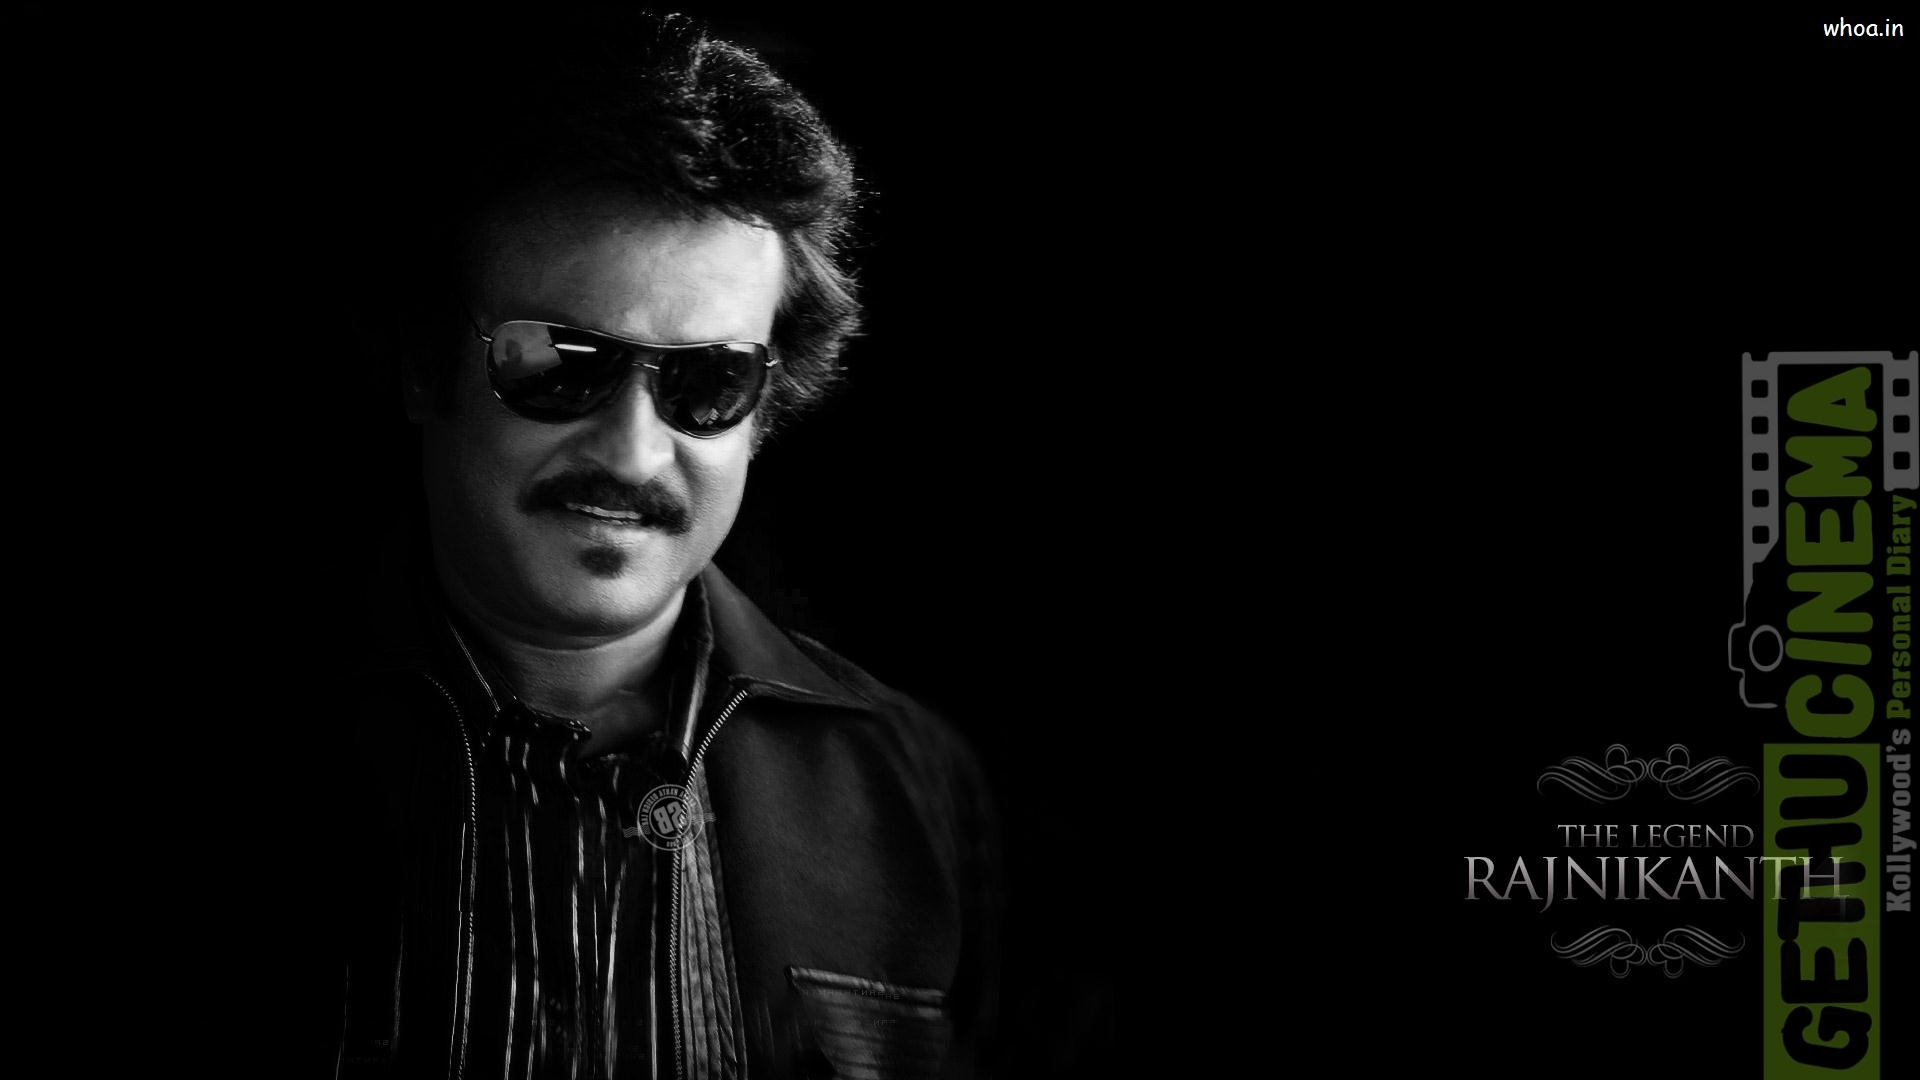 rajinikanth-black-hd-wallpaper